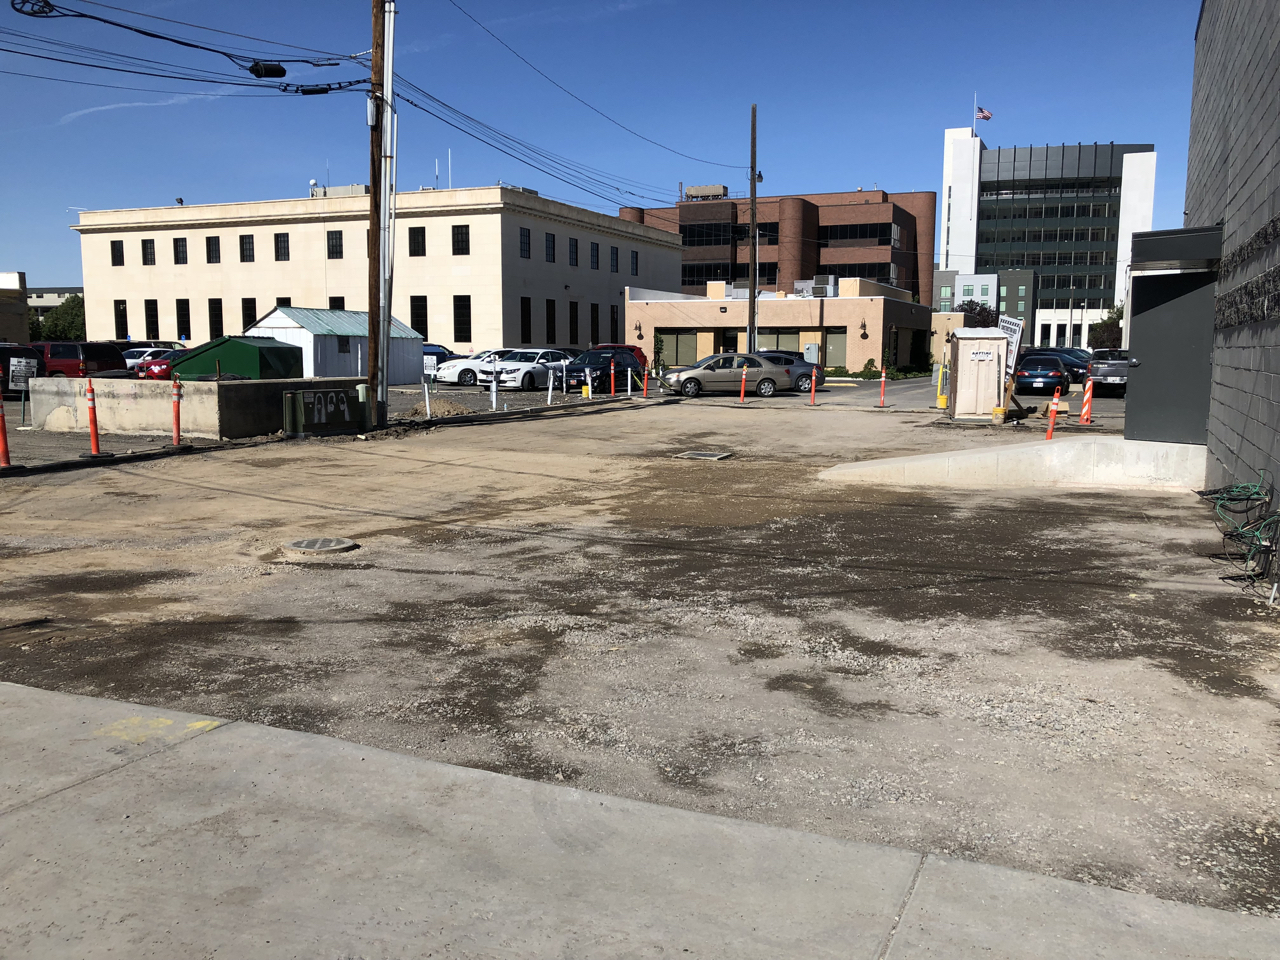 The rear parking area has been prepped and is ready for asphalt.